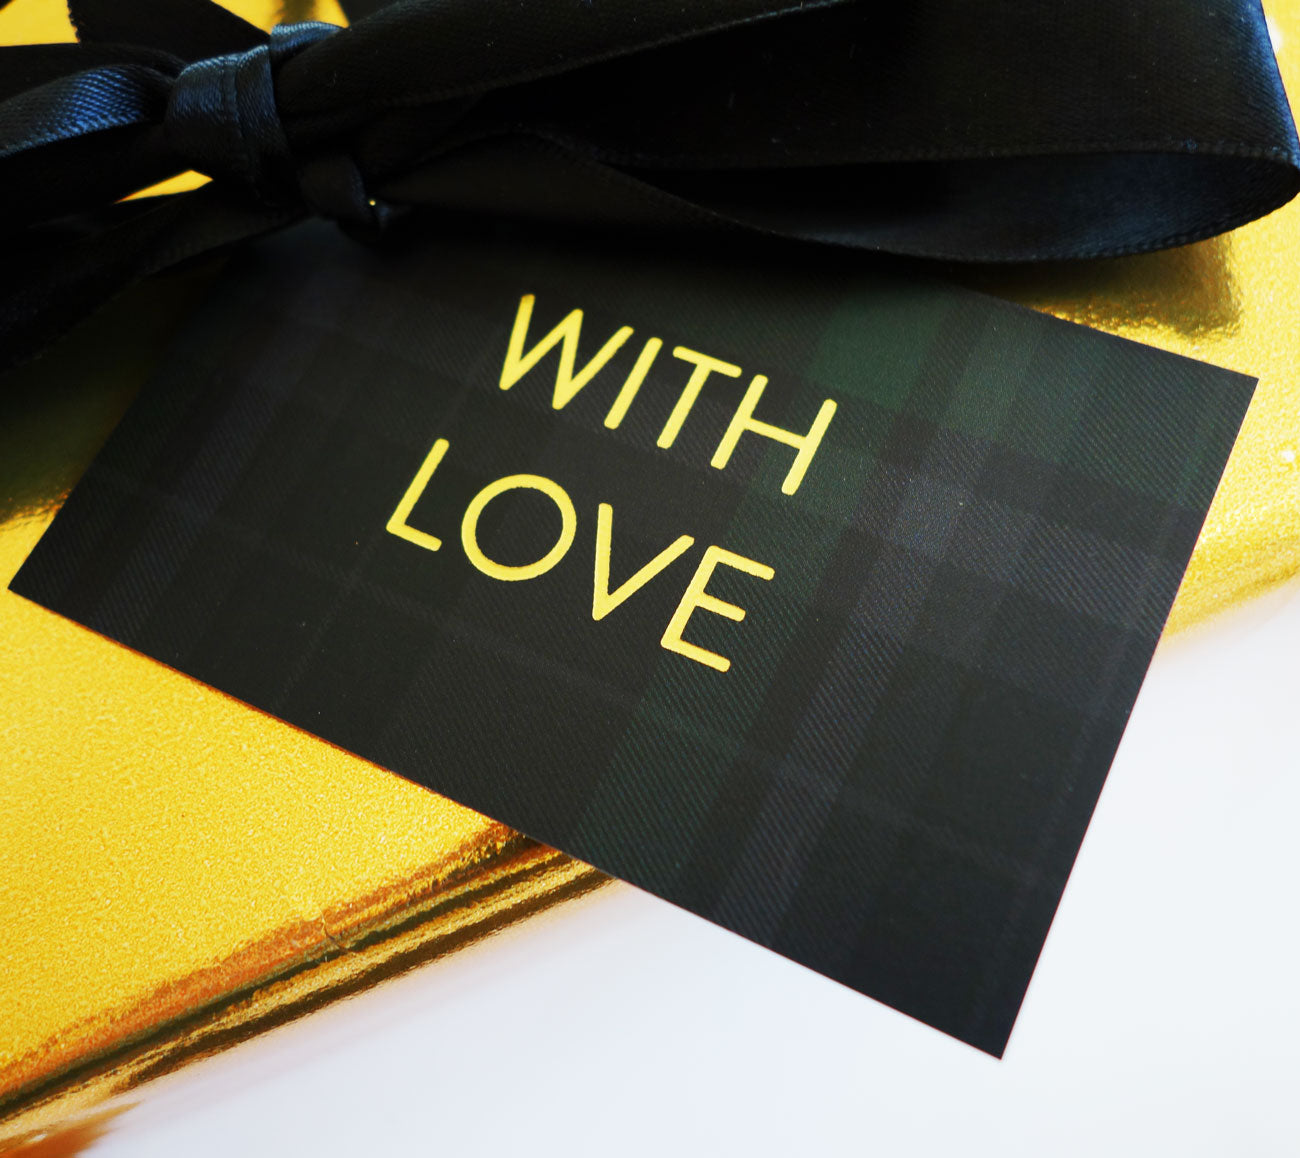 Green Tartan Christmas 'With Love' Gift Tags